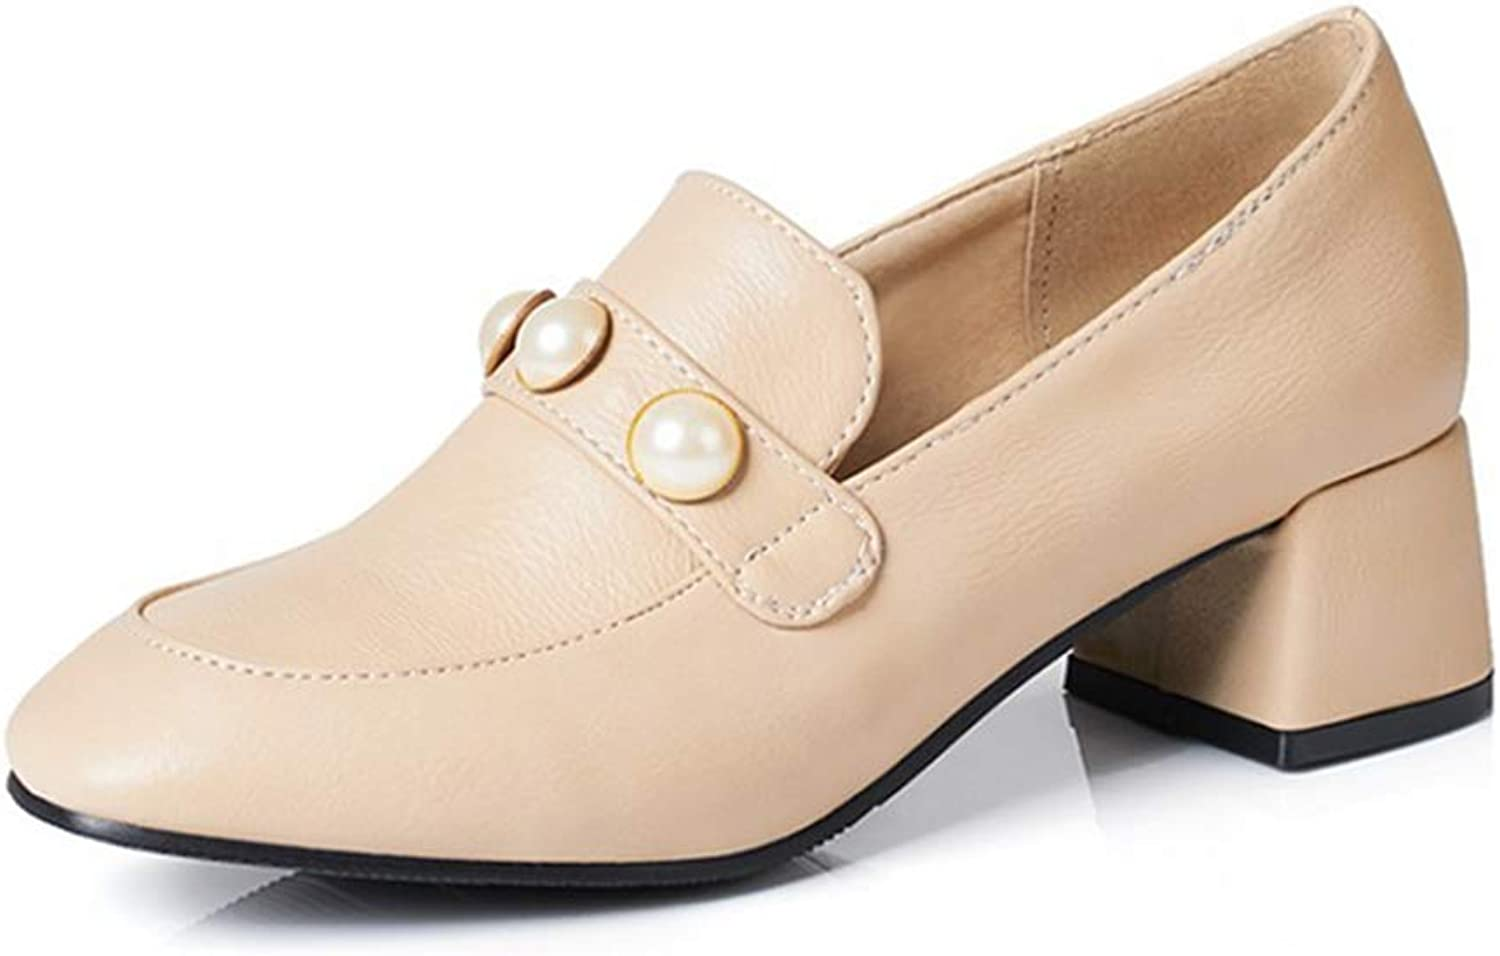 GIY Women's Square Toe Penny Loafer shoes Pearl Leather Slip On Mid Heel Retro Dress Oxford Pumps